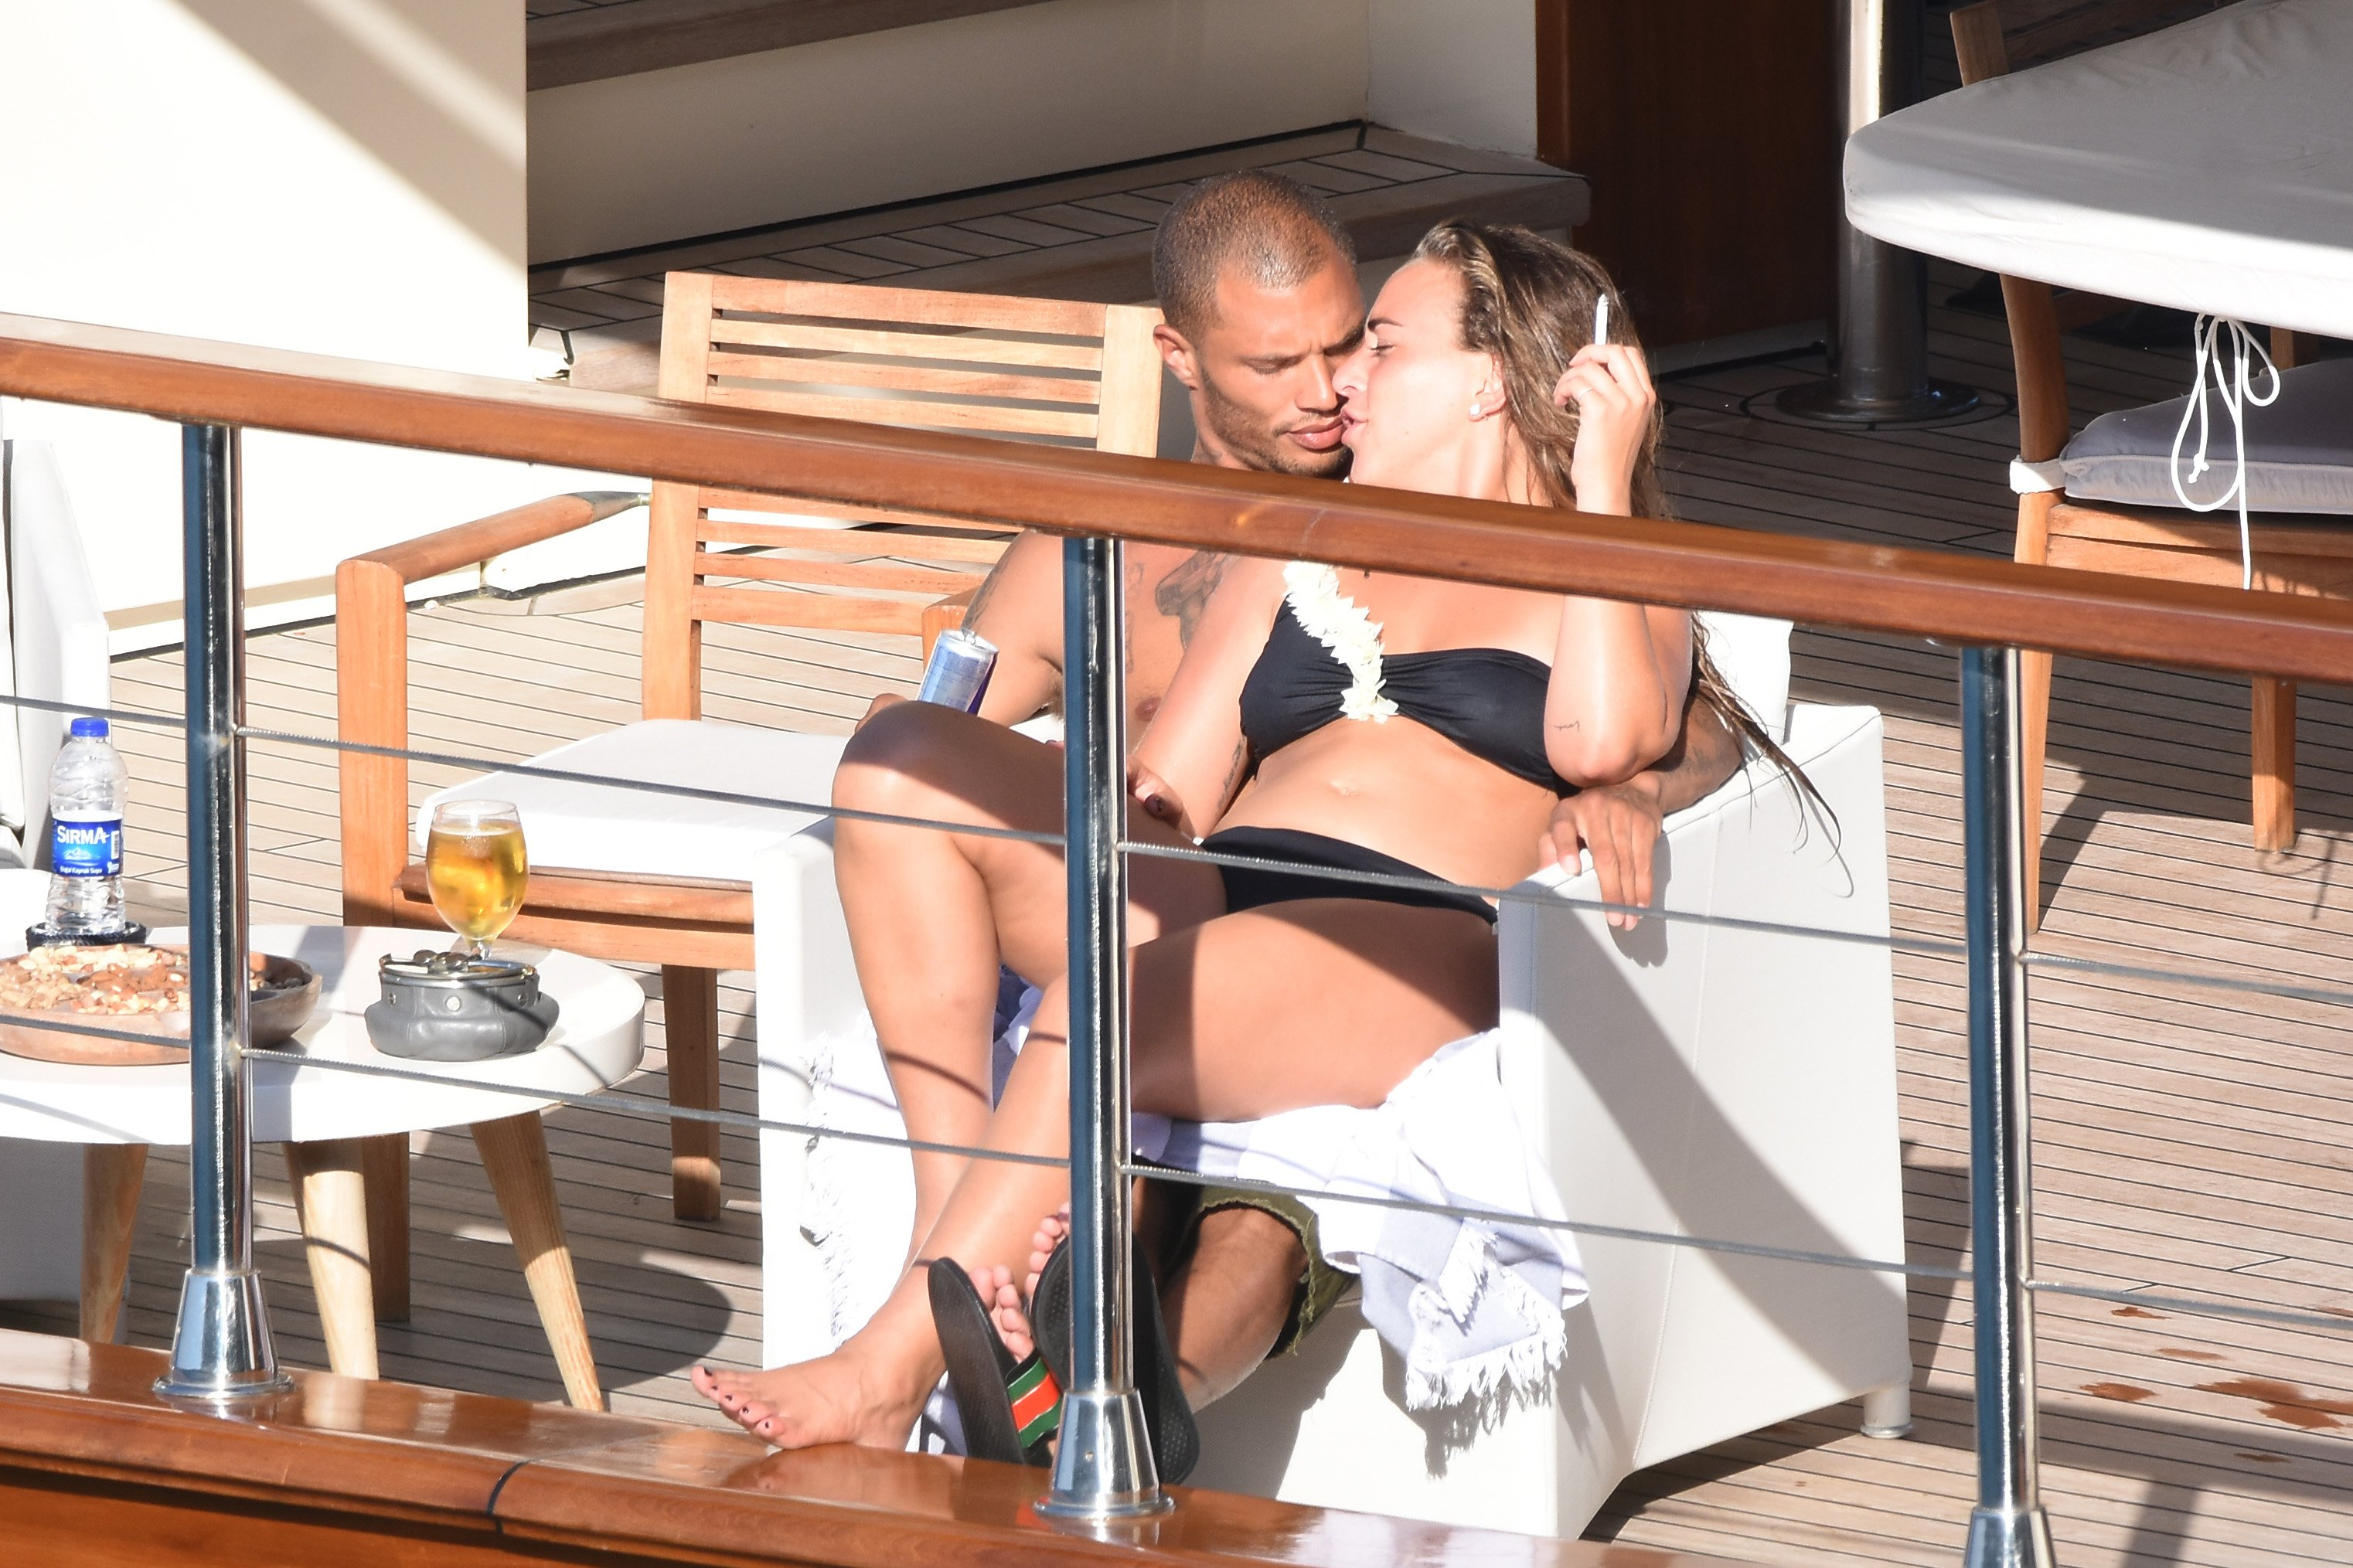 NO WEB NO APPS IN FRANCE - Exclusive - US Hot Convict turned model and DJ Jeremy Meeks (married to another) with his girlfriend UK heiress Chloe Green on vacation in Bodrum, Mugla, Turkey, on June 28, 2017. Jeremy Meeks, along with girlfriend and his manager during a blue voyage trip with the yacht Hazar Yıldızı sail along the bays of Bodrum., Image: 340003775, License: Rights-managed, Restrictions: , Model Release: no, Credit line: Profimedia, Abaca